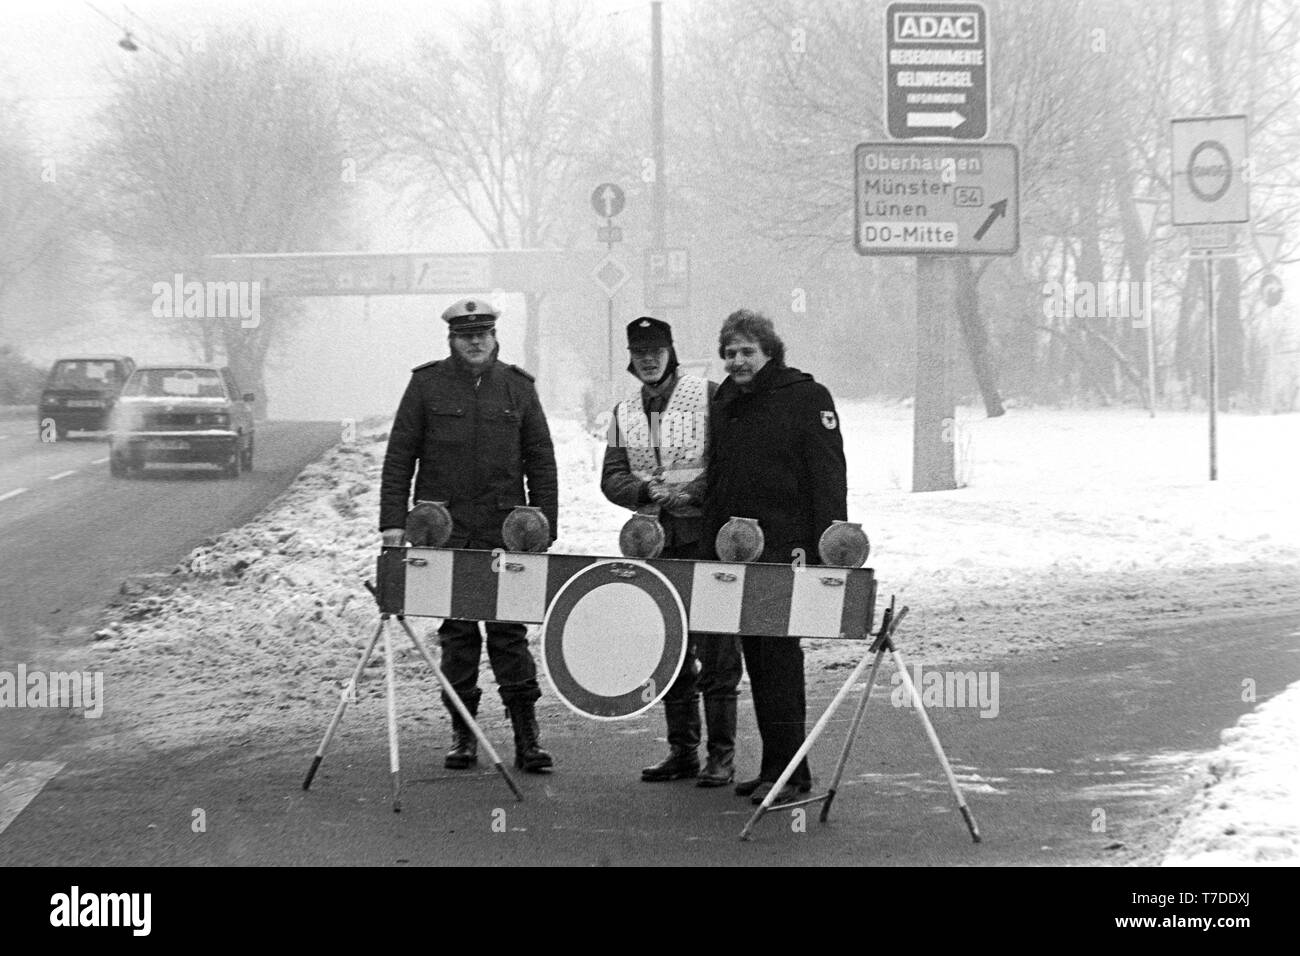 Dortmund, January 18, 1985. Smog alarm in the Ruhr area. Roadblock prohibits the exit on the B1 in the city center of Dortmund. In the Federal Republic of Germany  for the first time Smog Alarm Level III is called. Above all, the western Ruhr area is affected. Stage III of the Smog Regulation imposed an absolute ban on driving private cars.  ---   Dortmund, 18. Januar 1985. Smog-Alarm im Ruhrgebiet. Schild verbietet die Ausfahrt an der B1 in die Innenstadt von Dortmund. In der Bundesrepublik wird erstmals Smog-Alarm der Stufe III ausgerufen. Betroffen ist vor allem das westliche Ruhrgebiet. Mi Stock Photo